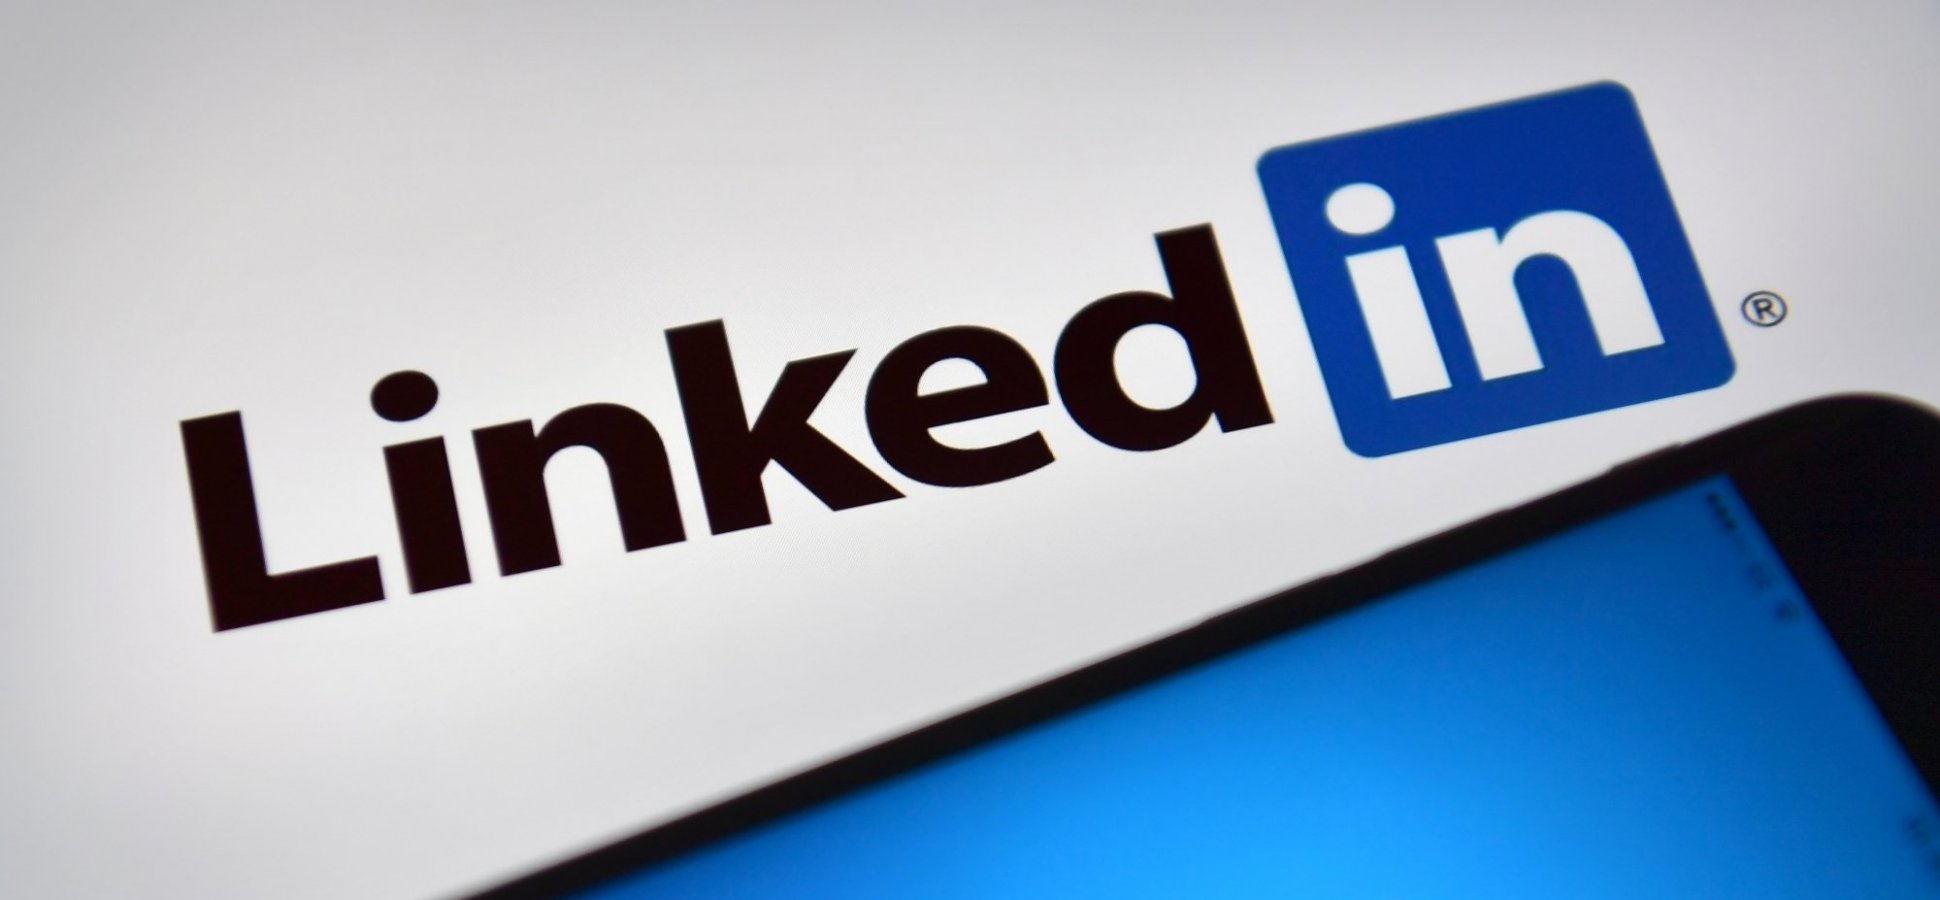 LinkedIn Just Revealed 11 Surprising Hidden Tips to Help You Land Your Next Job